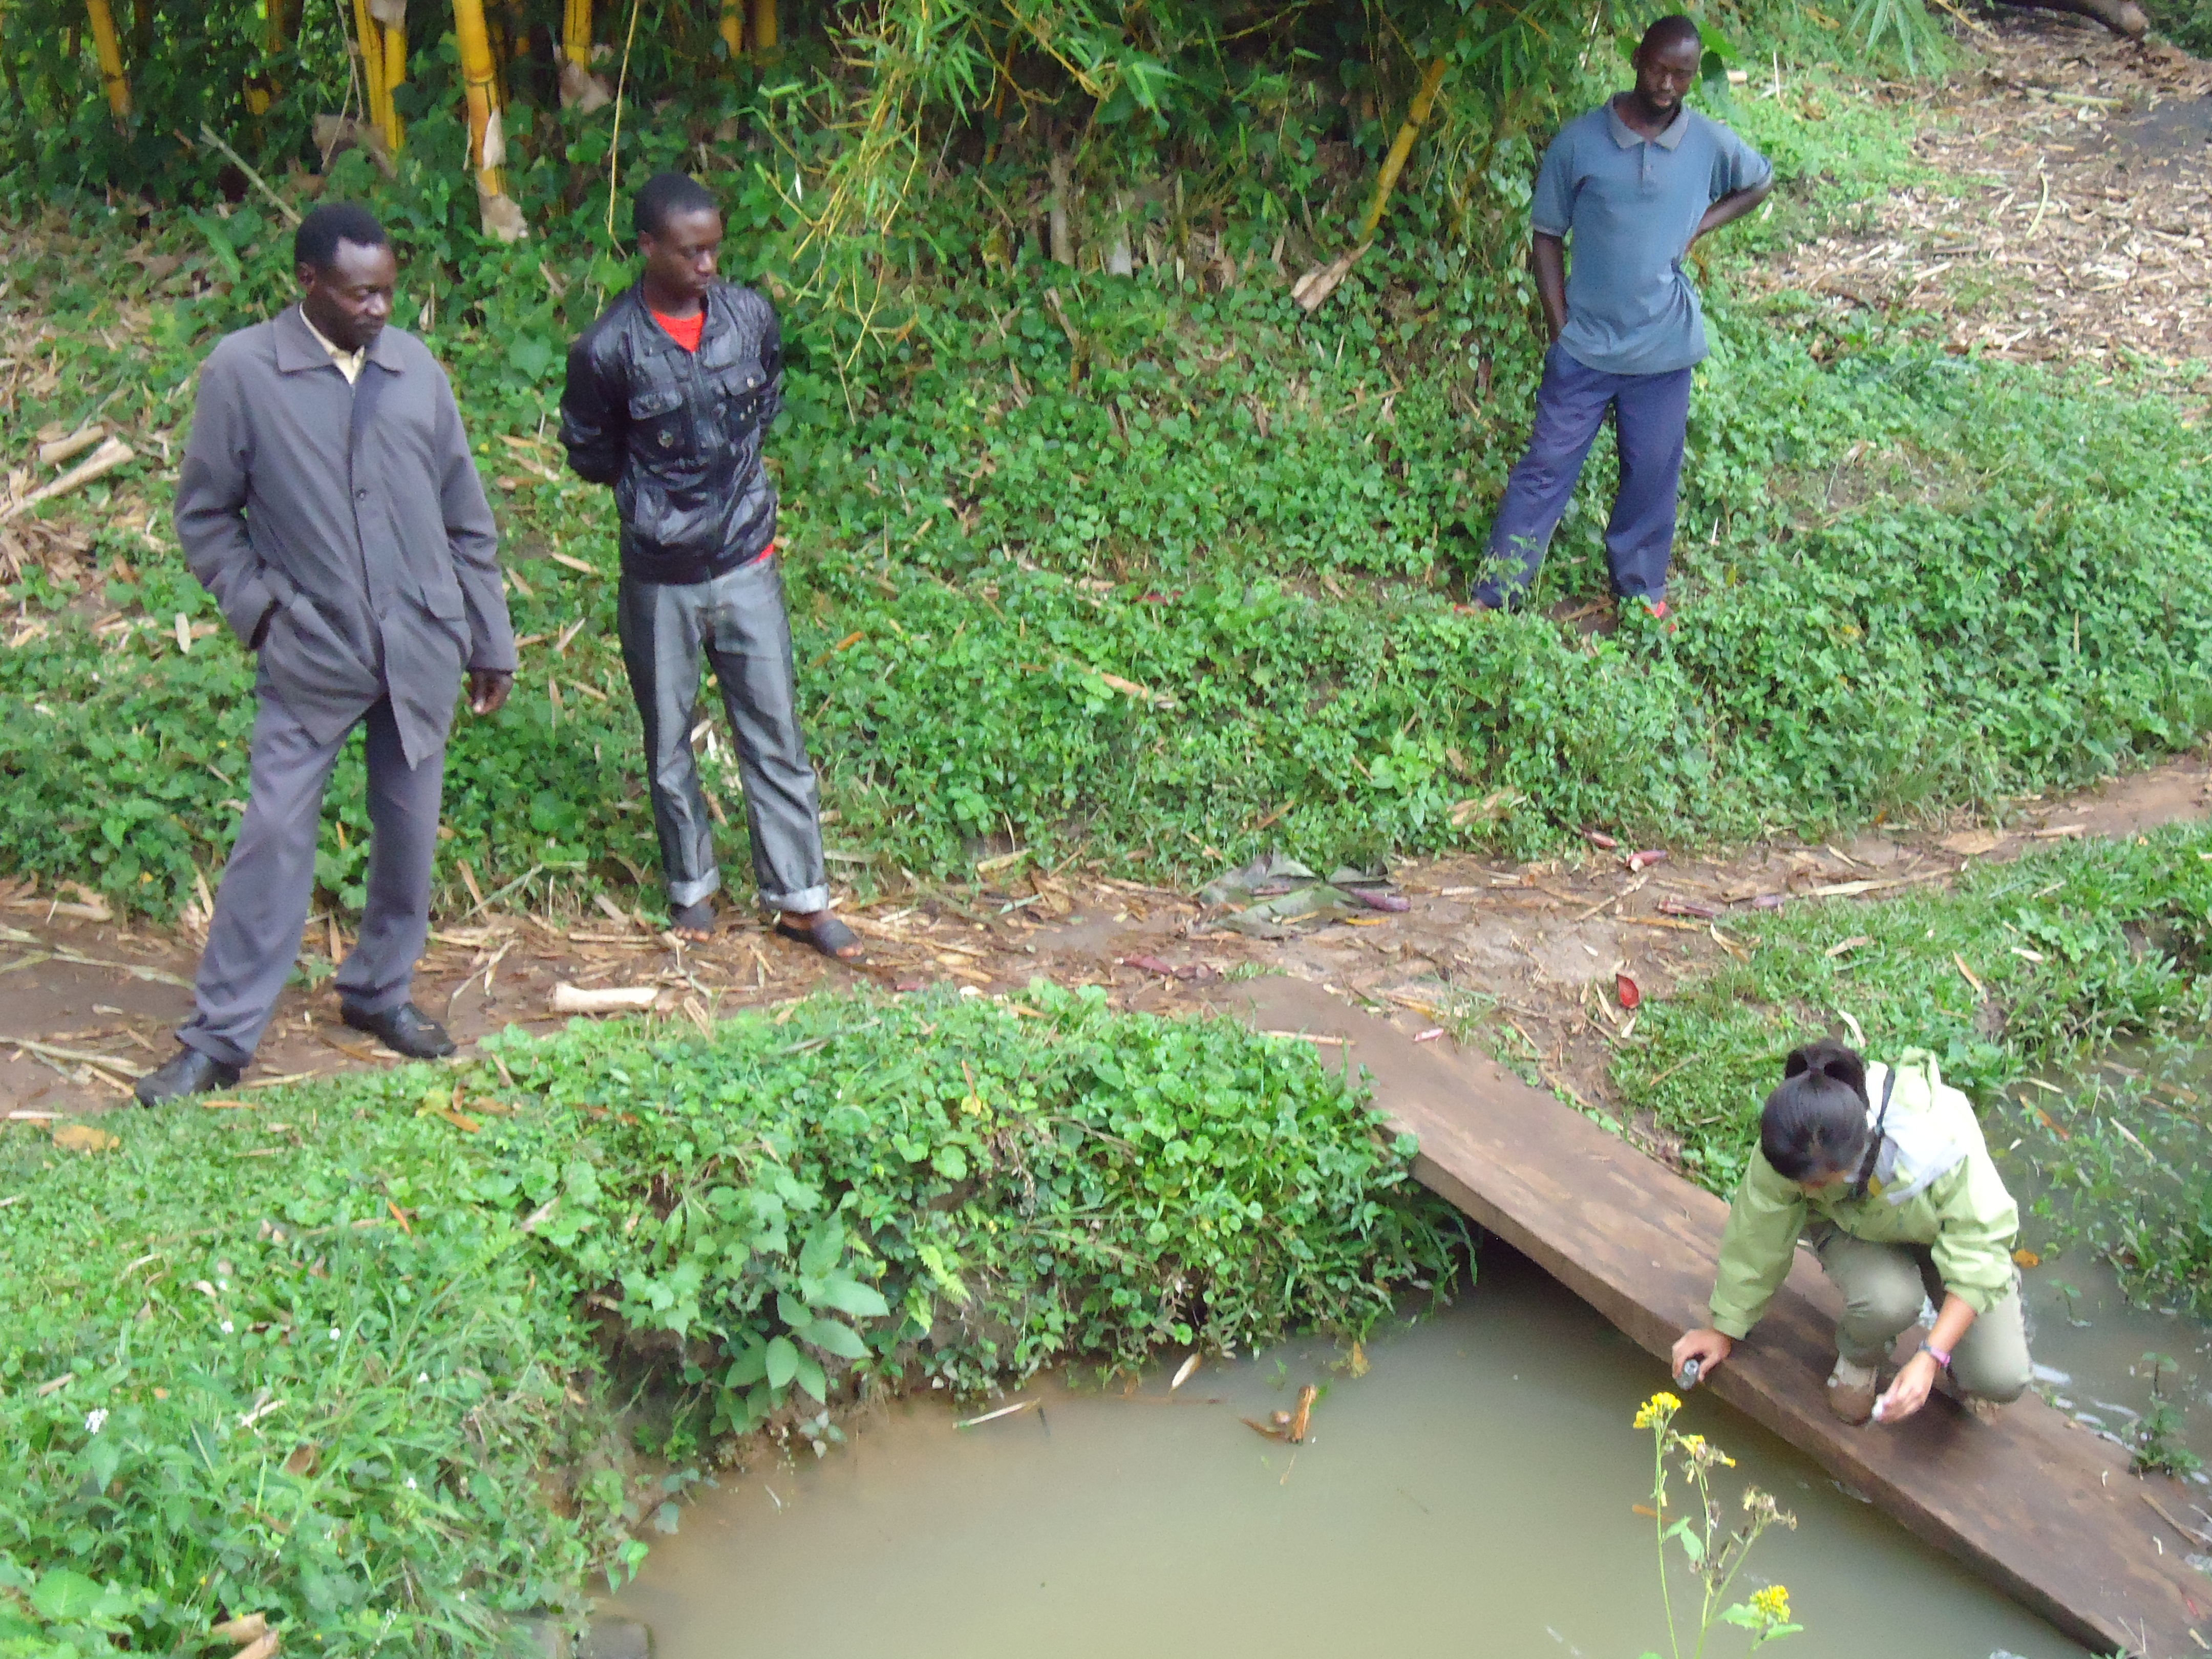 Mona Dai taking water samples in Uganda